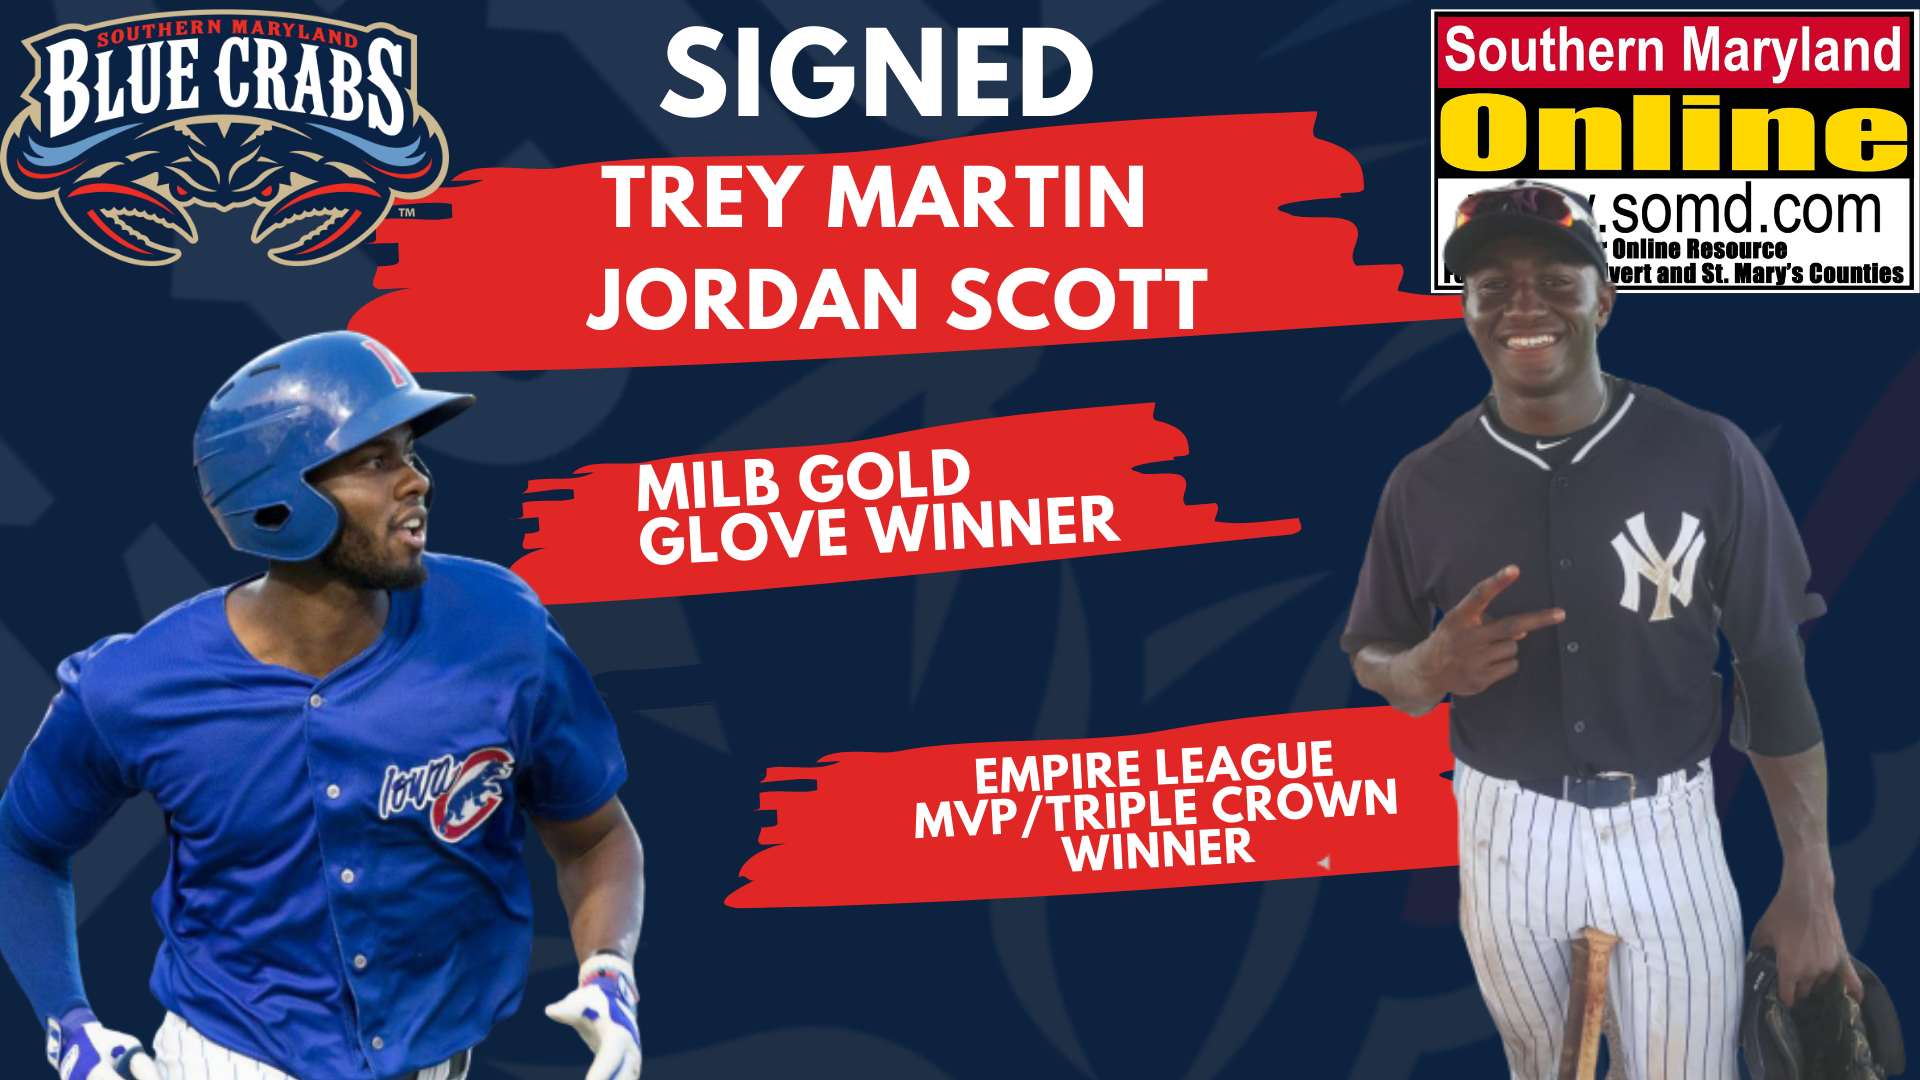 Blue Crabs Sign MiLB Gold Glove Winner, Empire League MVP